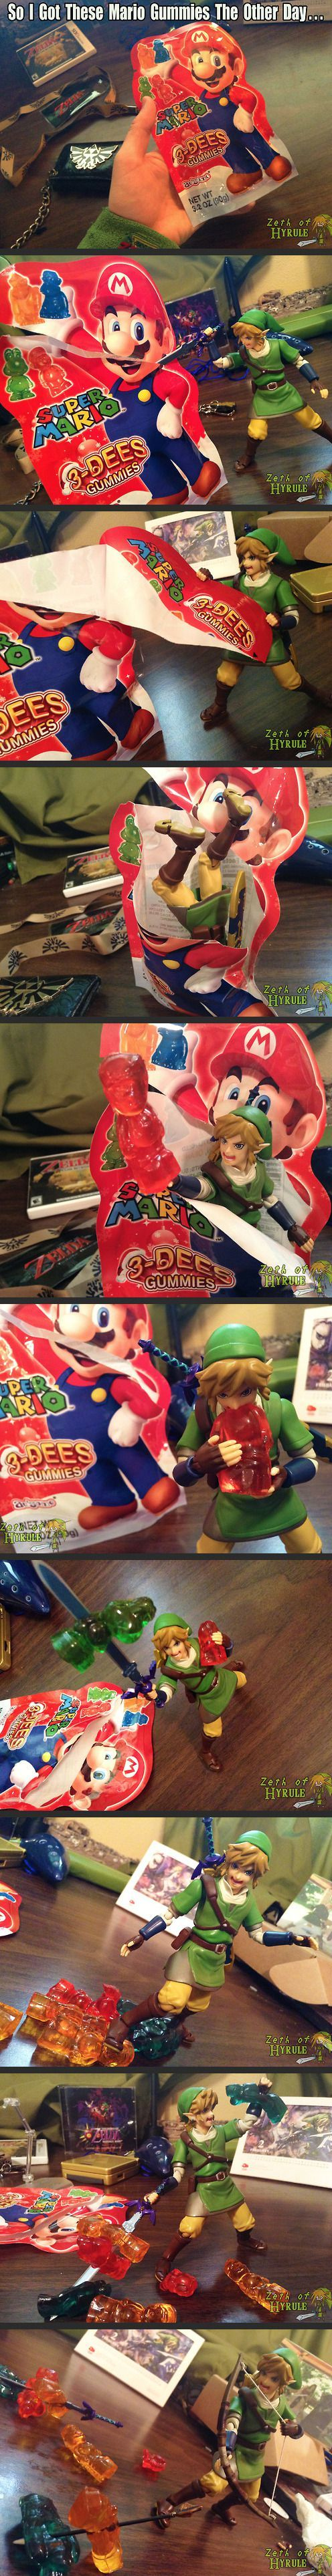 I thought Link liked Mario. I guess not.